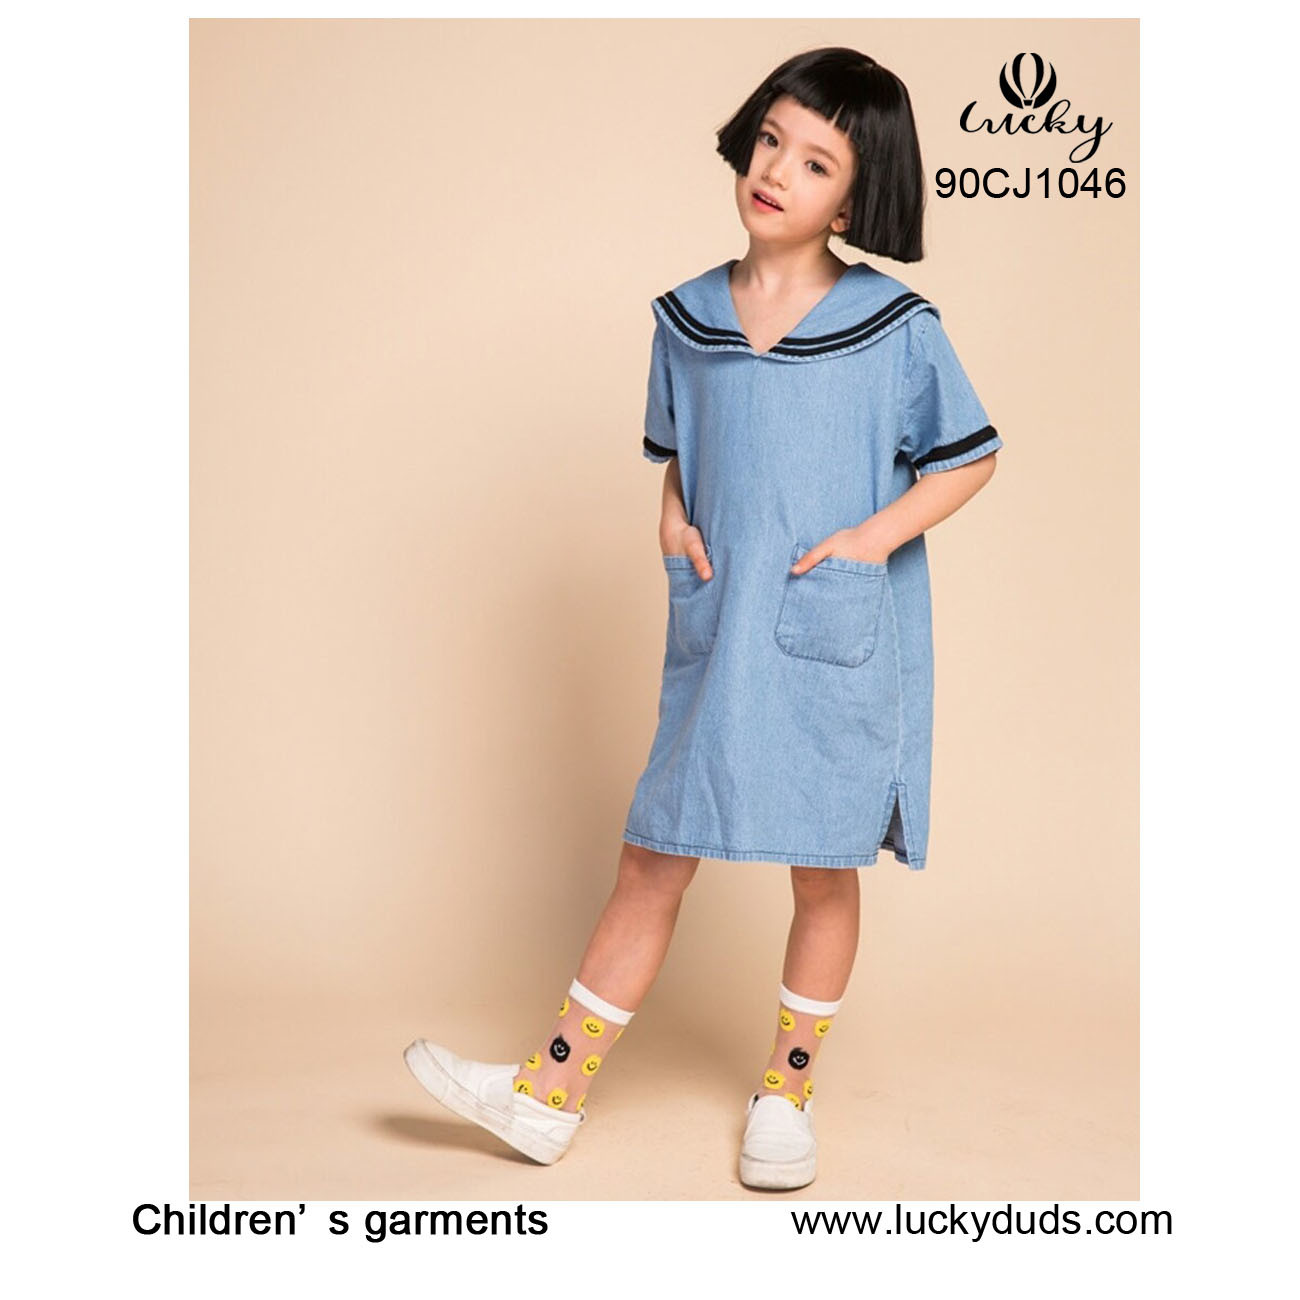 f1bd0e979a We make garments as per different countries' sizes request, choose cloth  fabric and colors as per customer's request, if you need more questions, ...